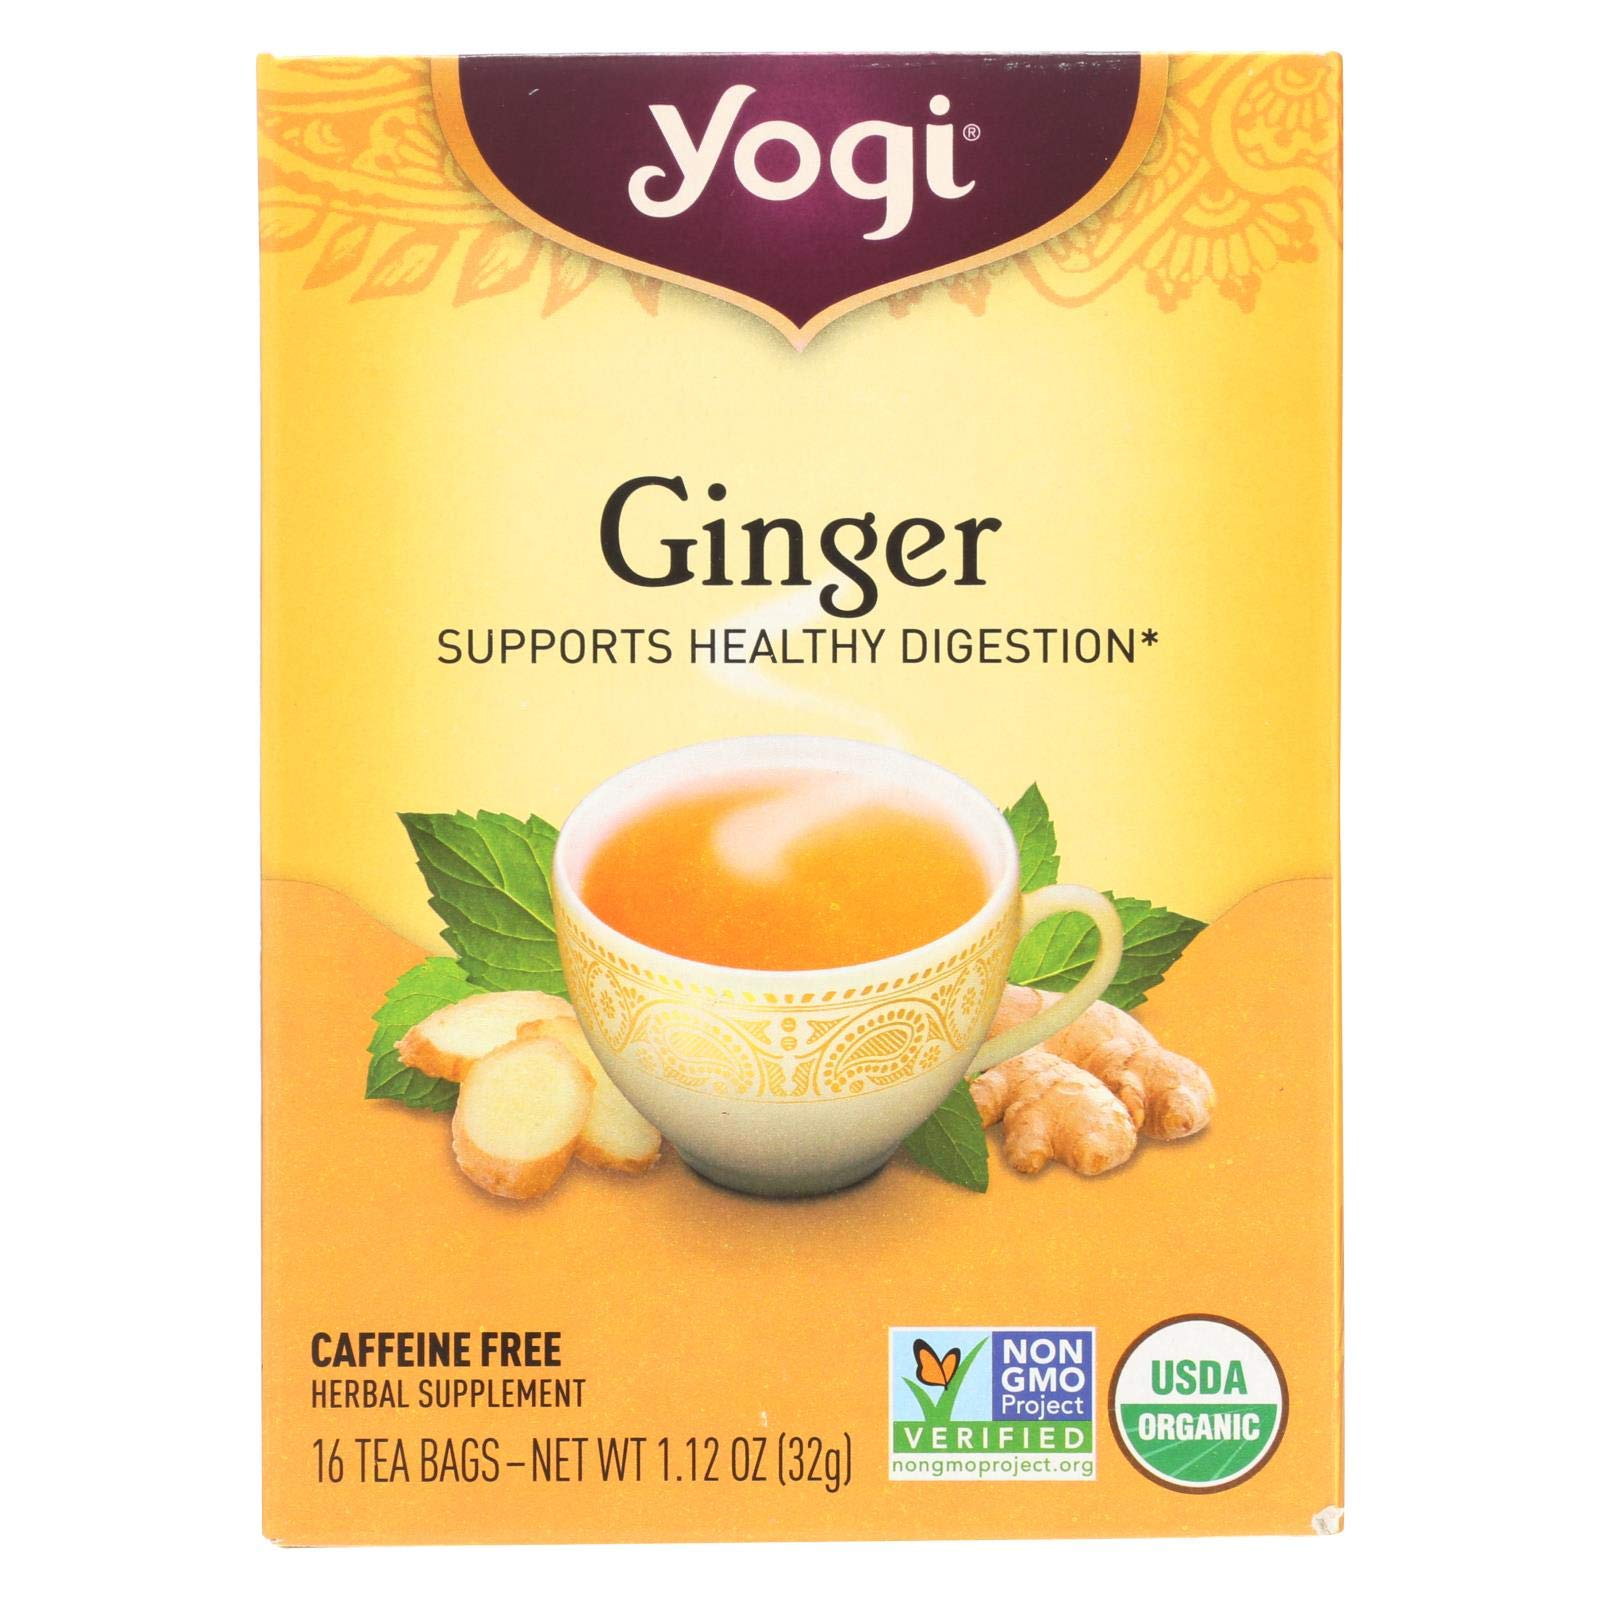 Yogi Tea - Ginger - Supports Healthy Digestion - 6 Pack, 96 Tea Bags Total by Yogi